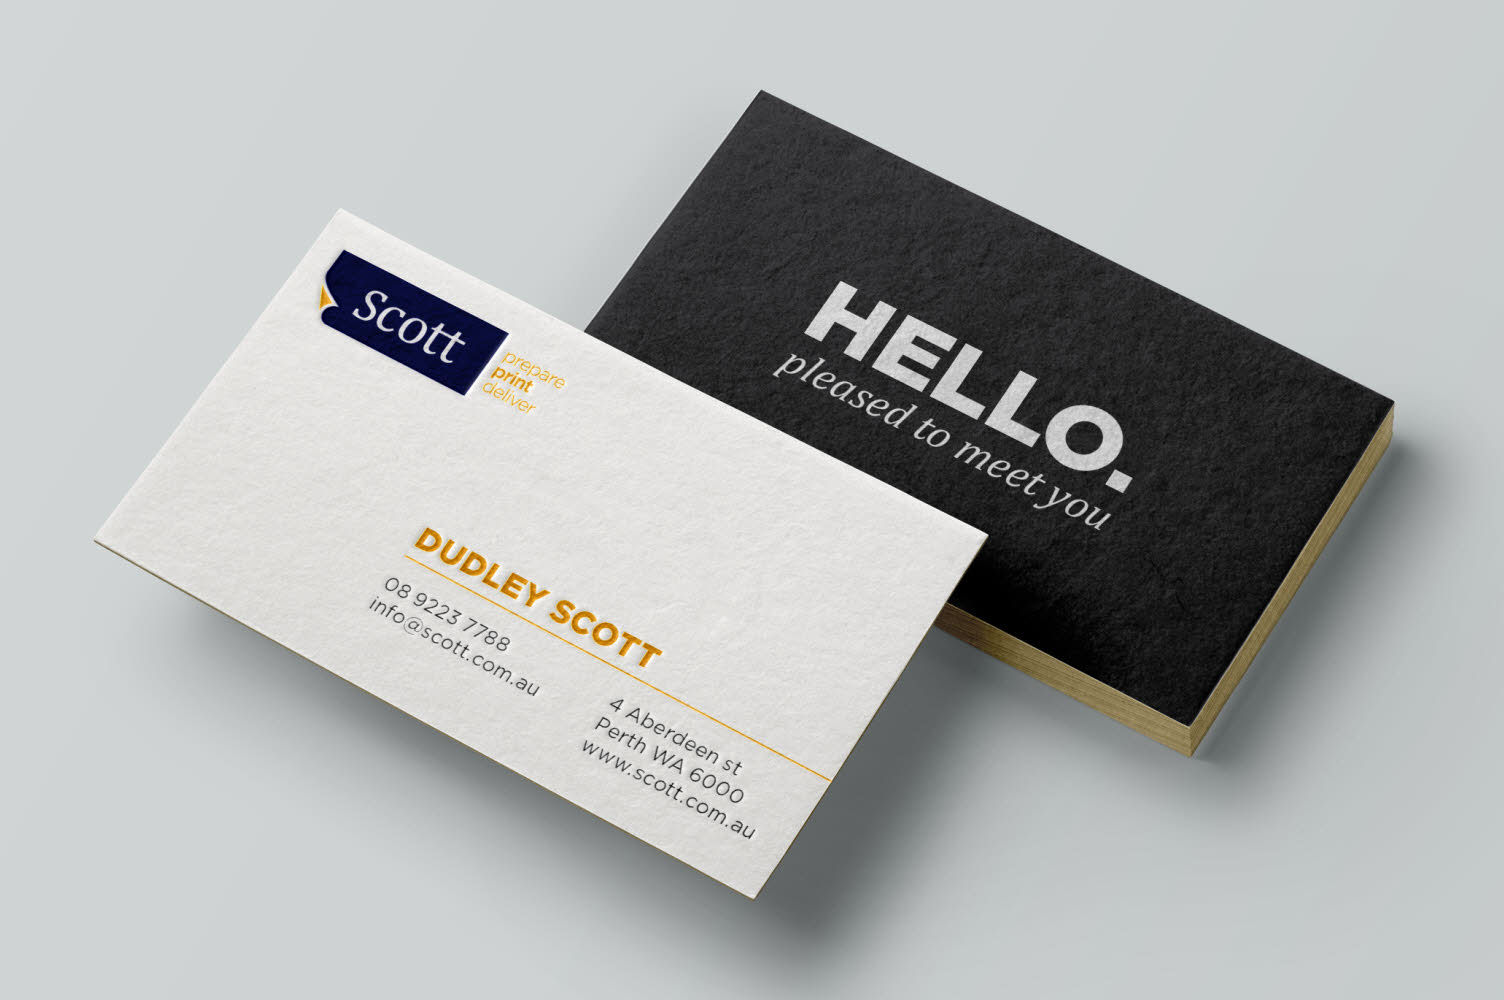 Business Card Printing Perth, WA - Scott Print